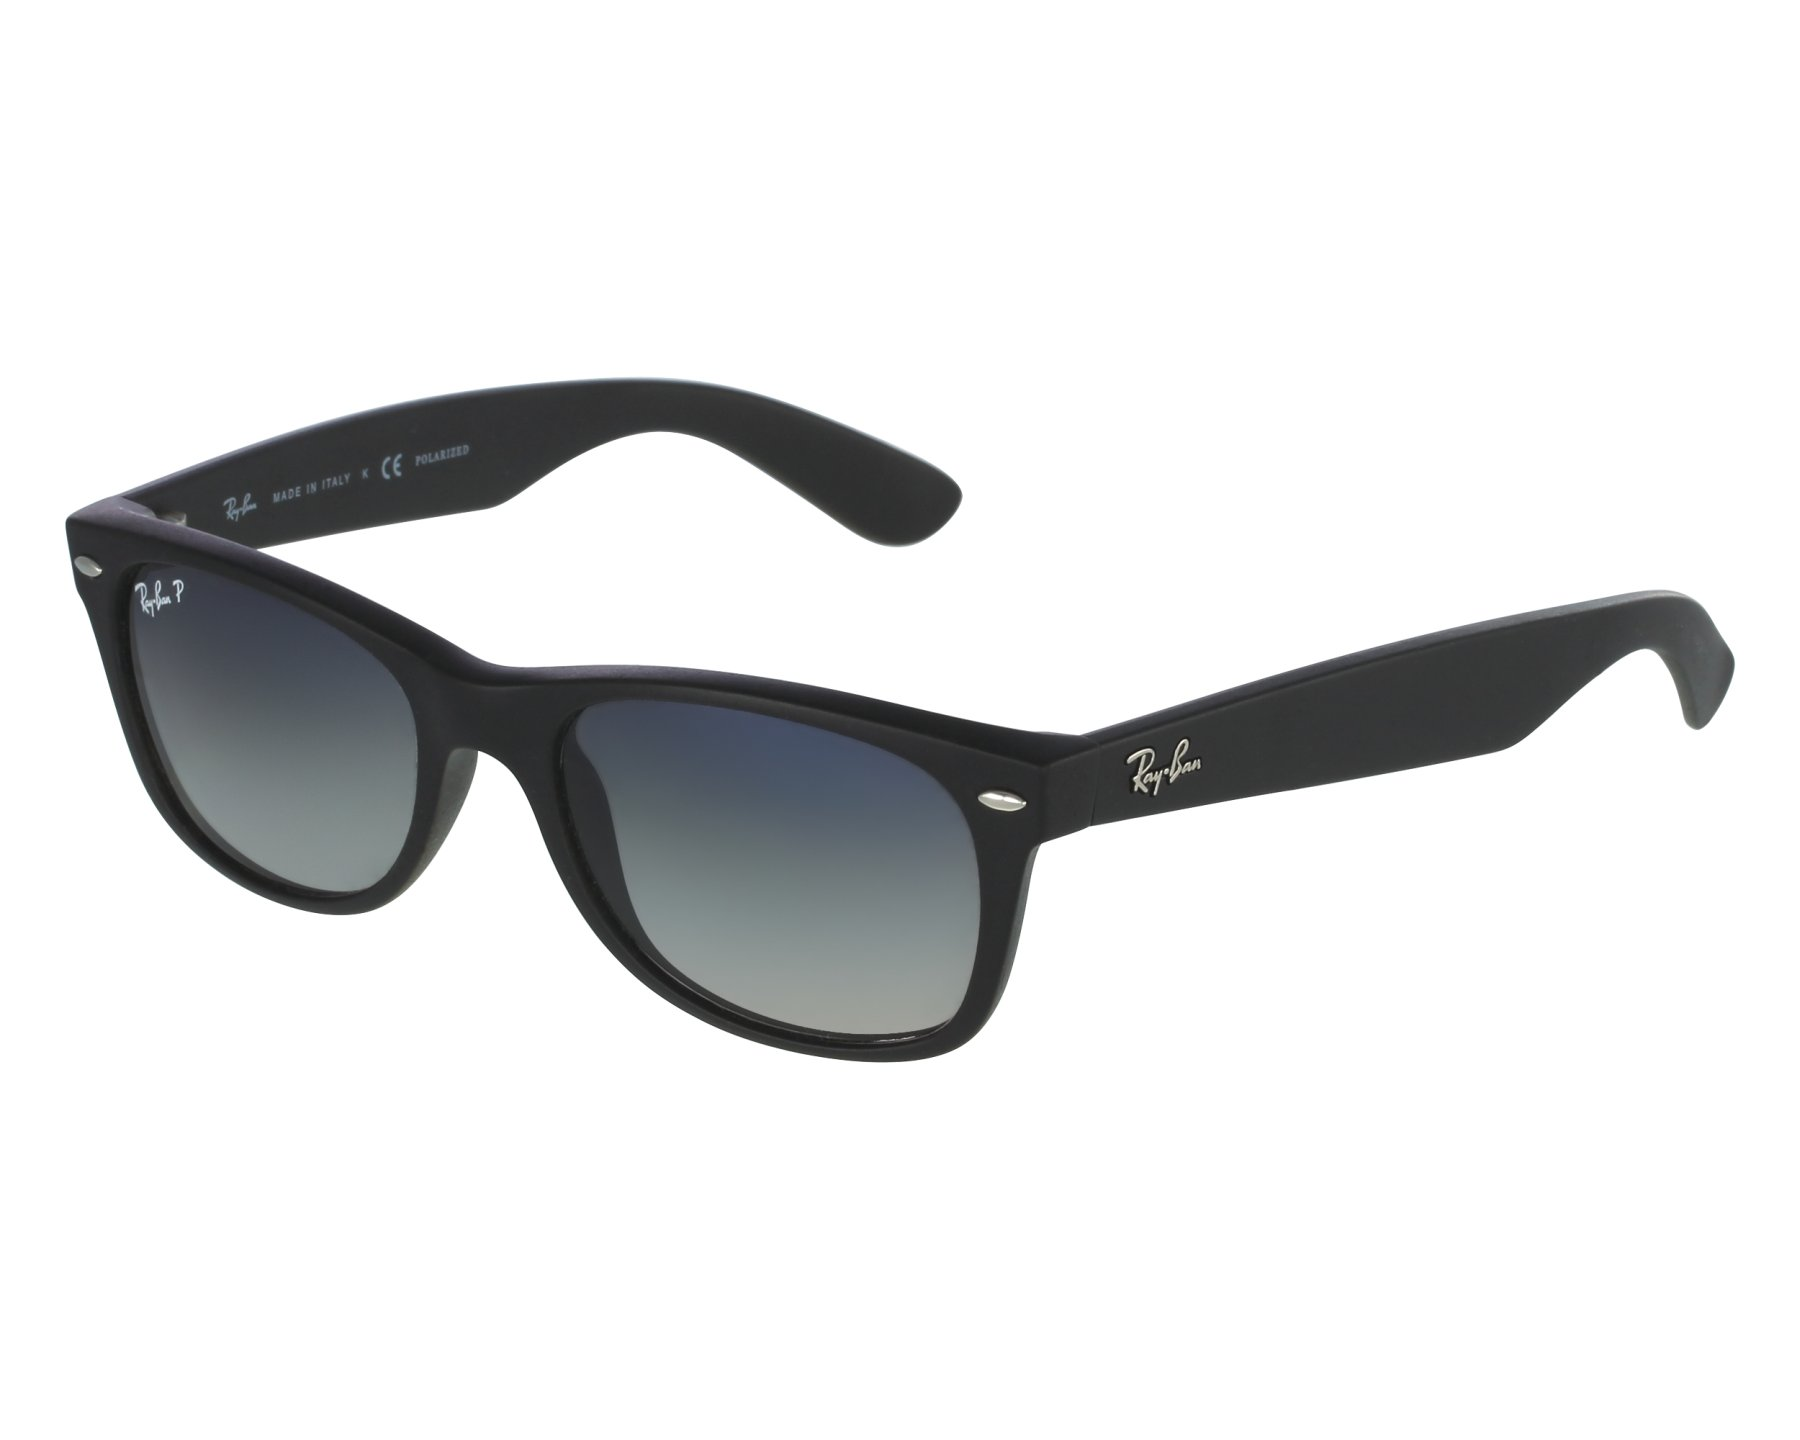 0e2d9826ba Sunglasses Ray-Ban RB-2132 601S 78 52-18 Black front view